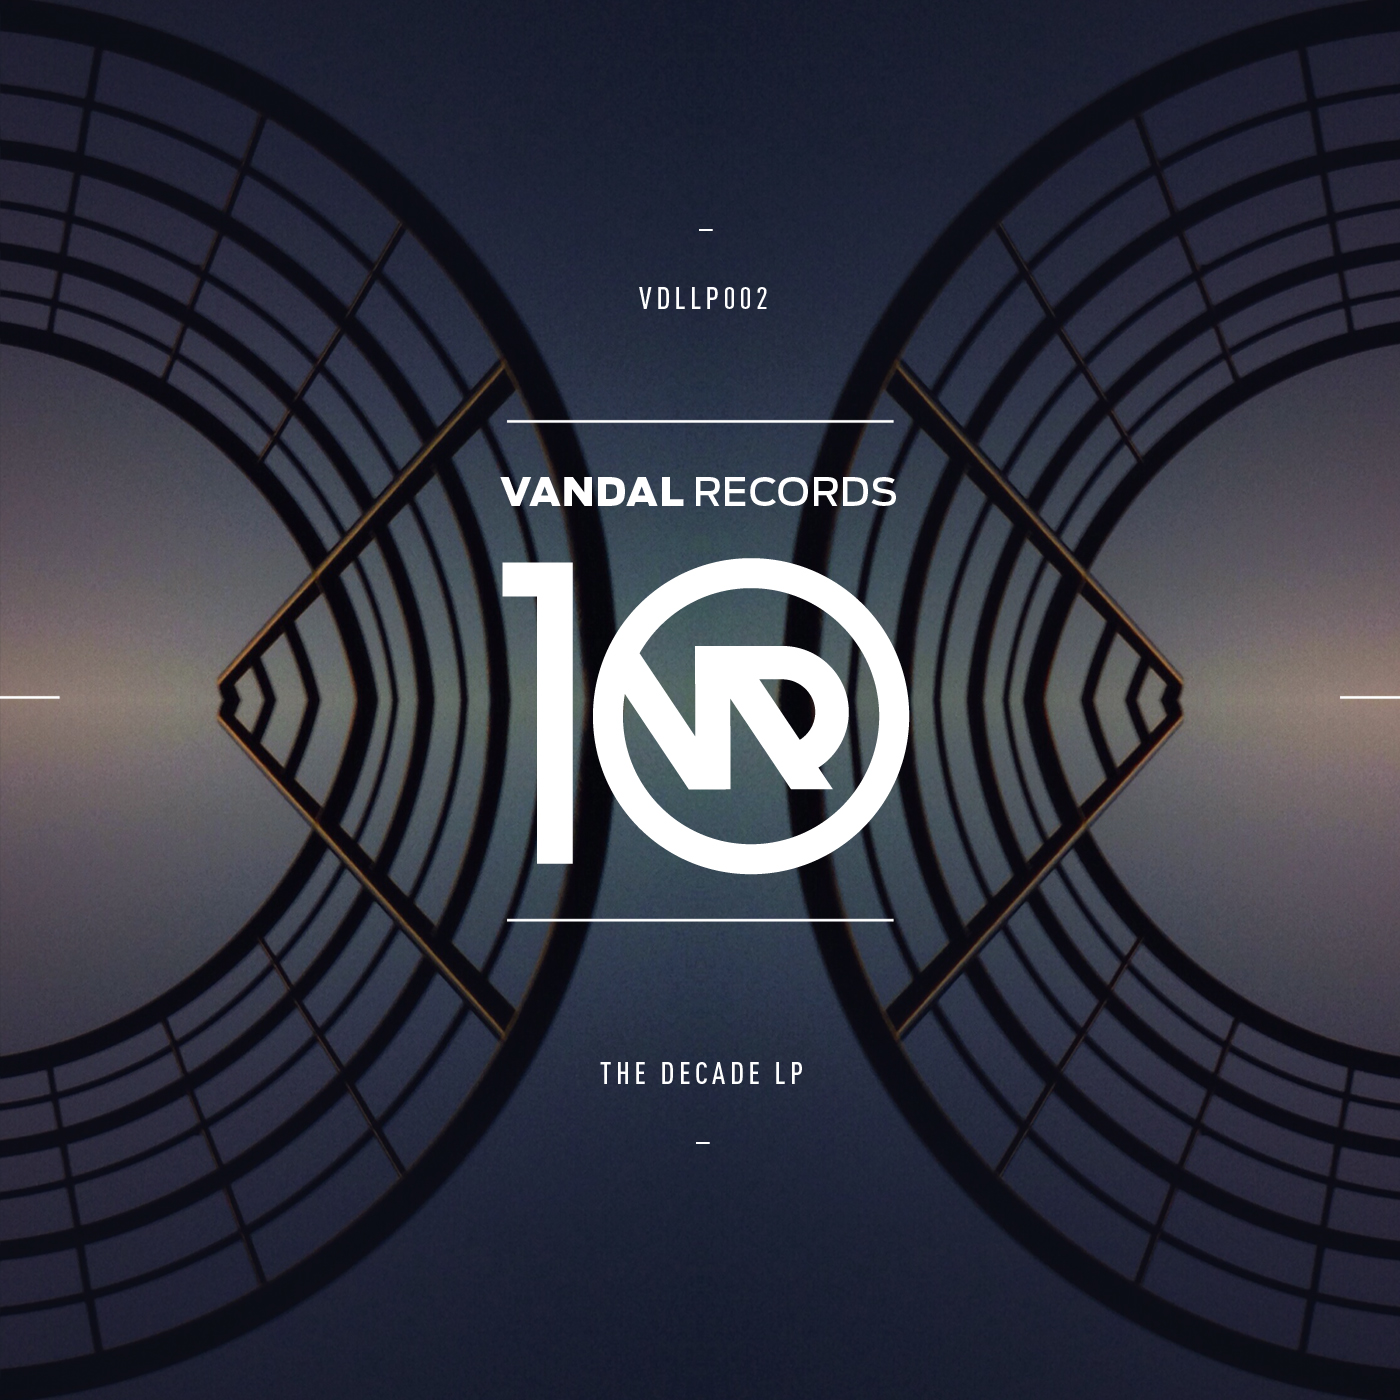 V.A. – The Decade LP (Vandal 002)